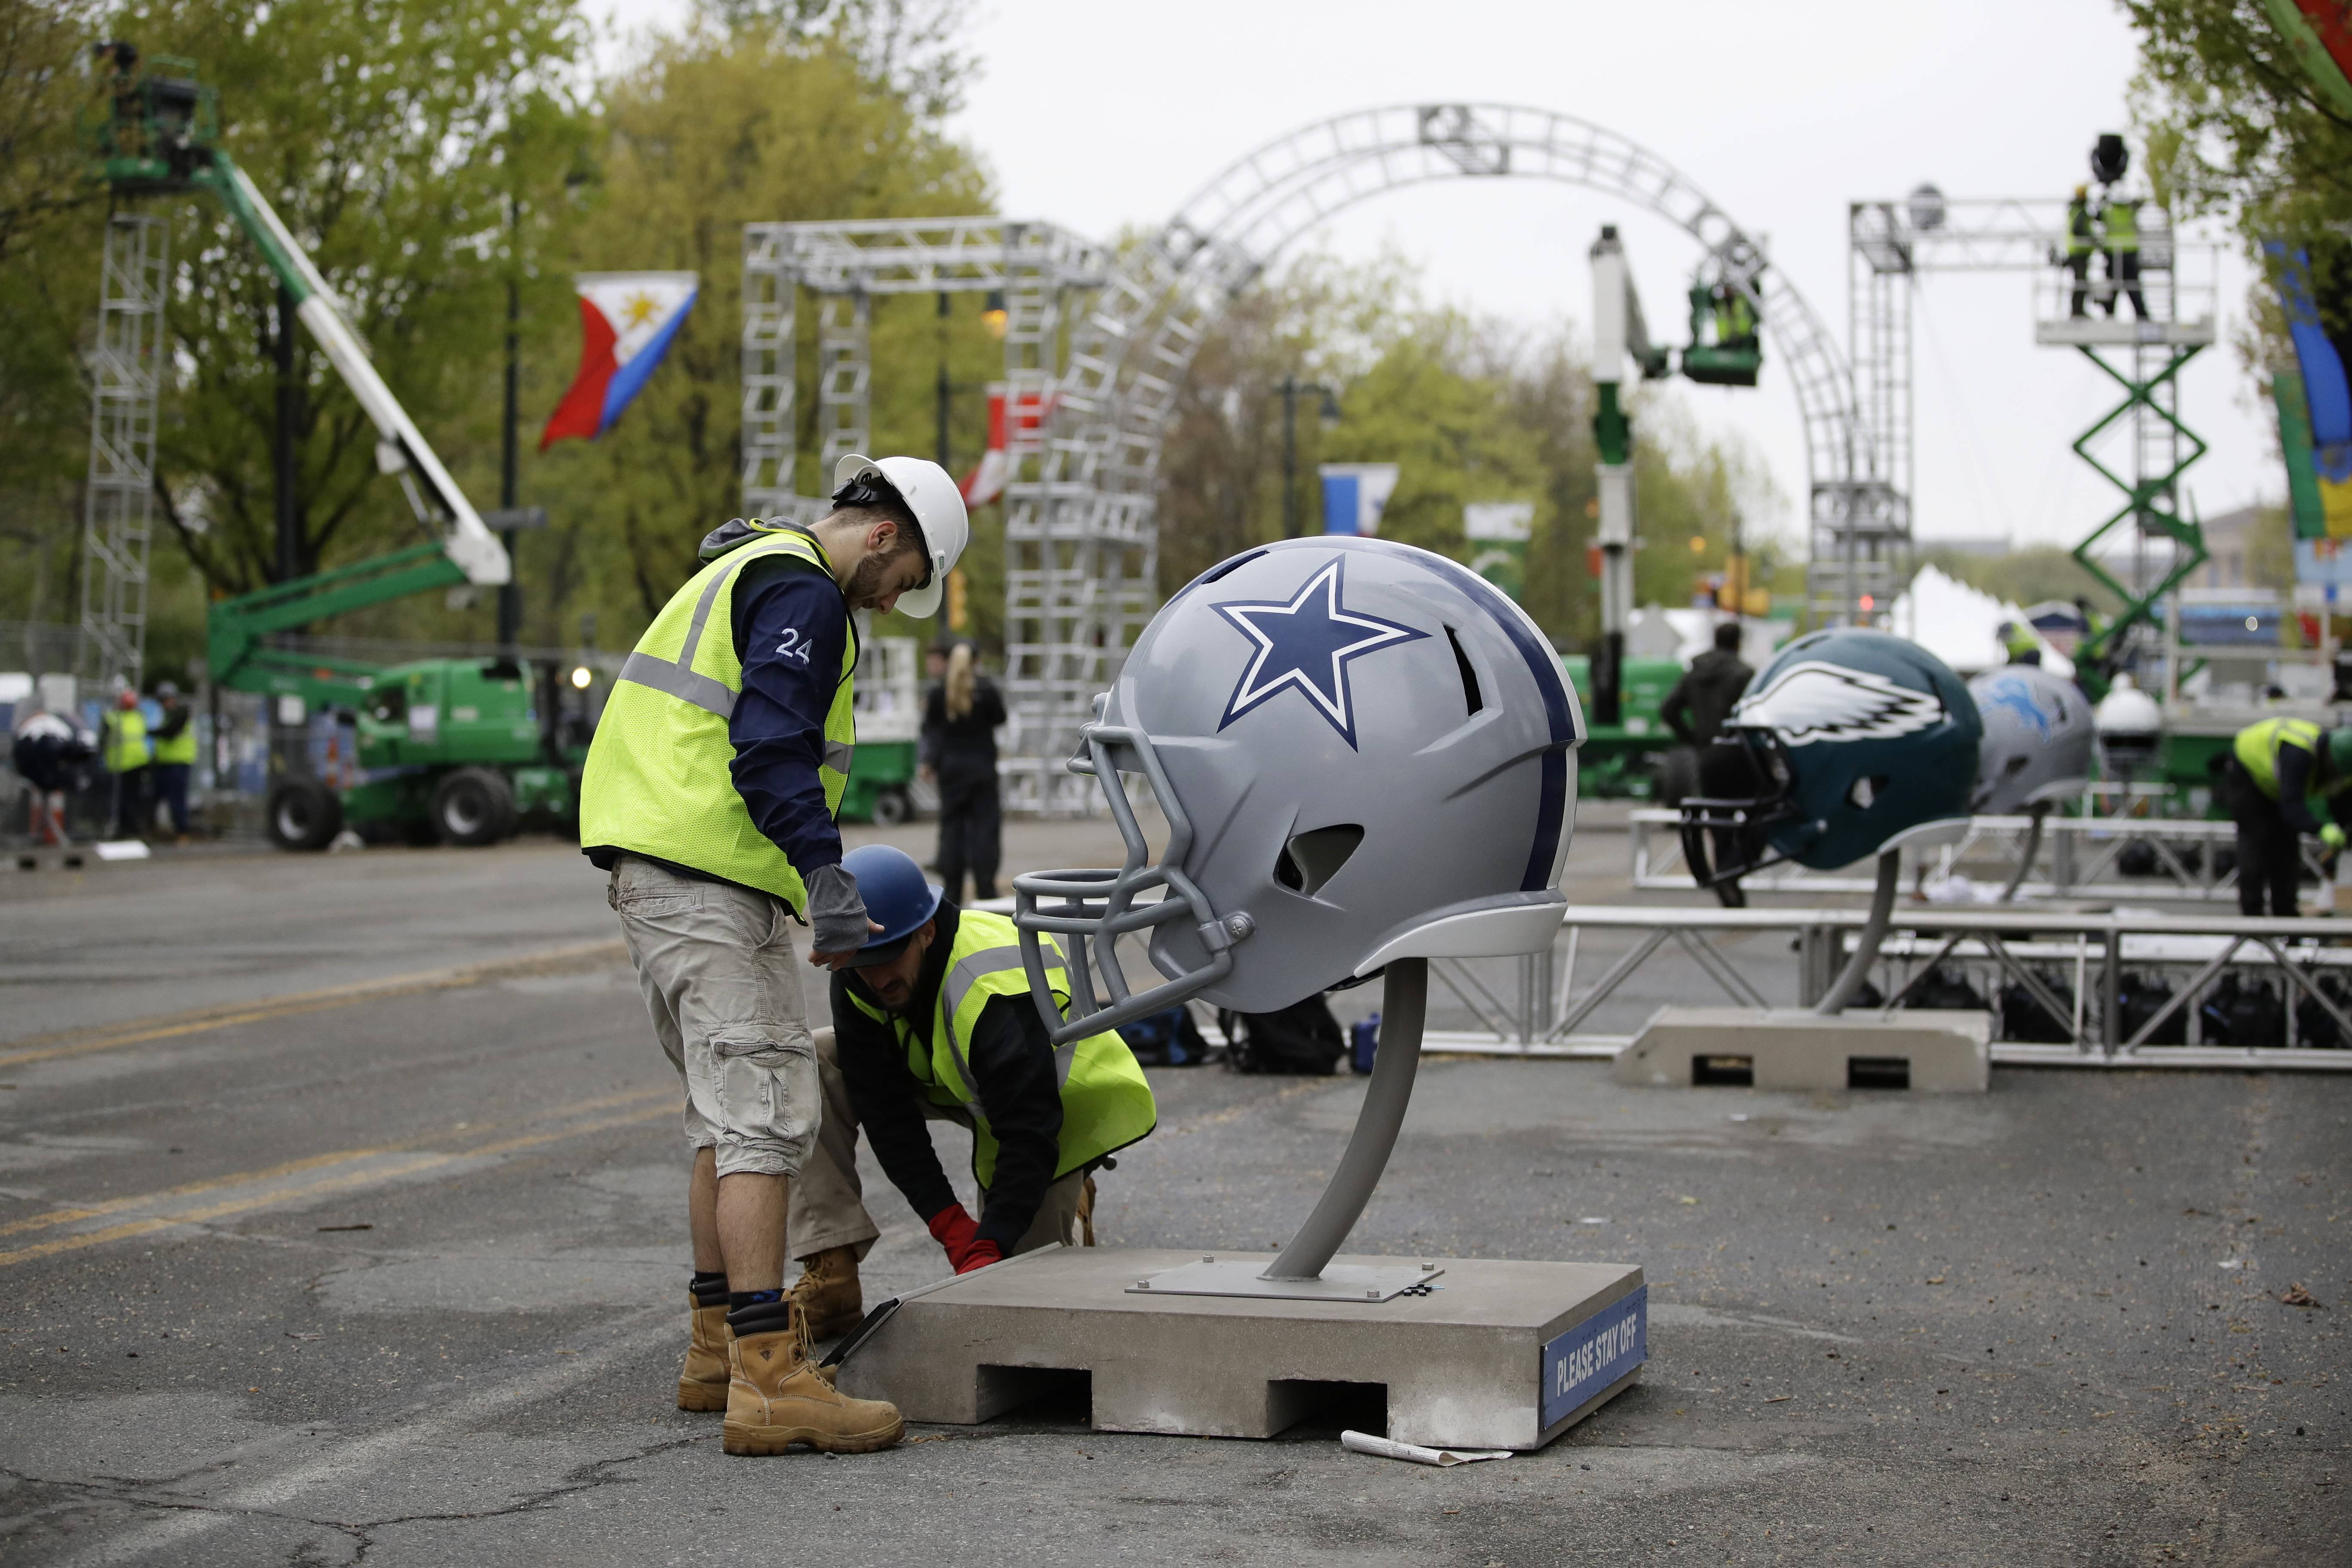 Workers make preparations ahead of the 2017 NFL draft, which will be held at the Philadelphia Museum of Art on Thursday through Saturday.